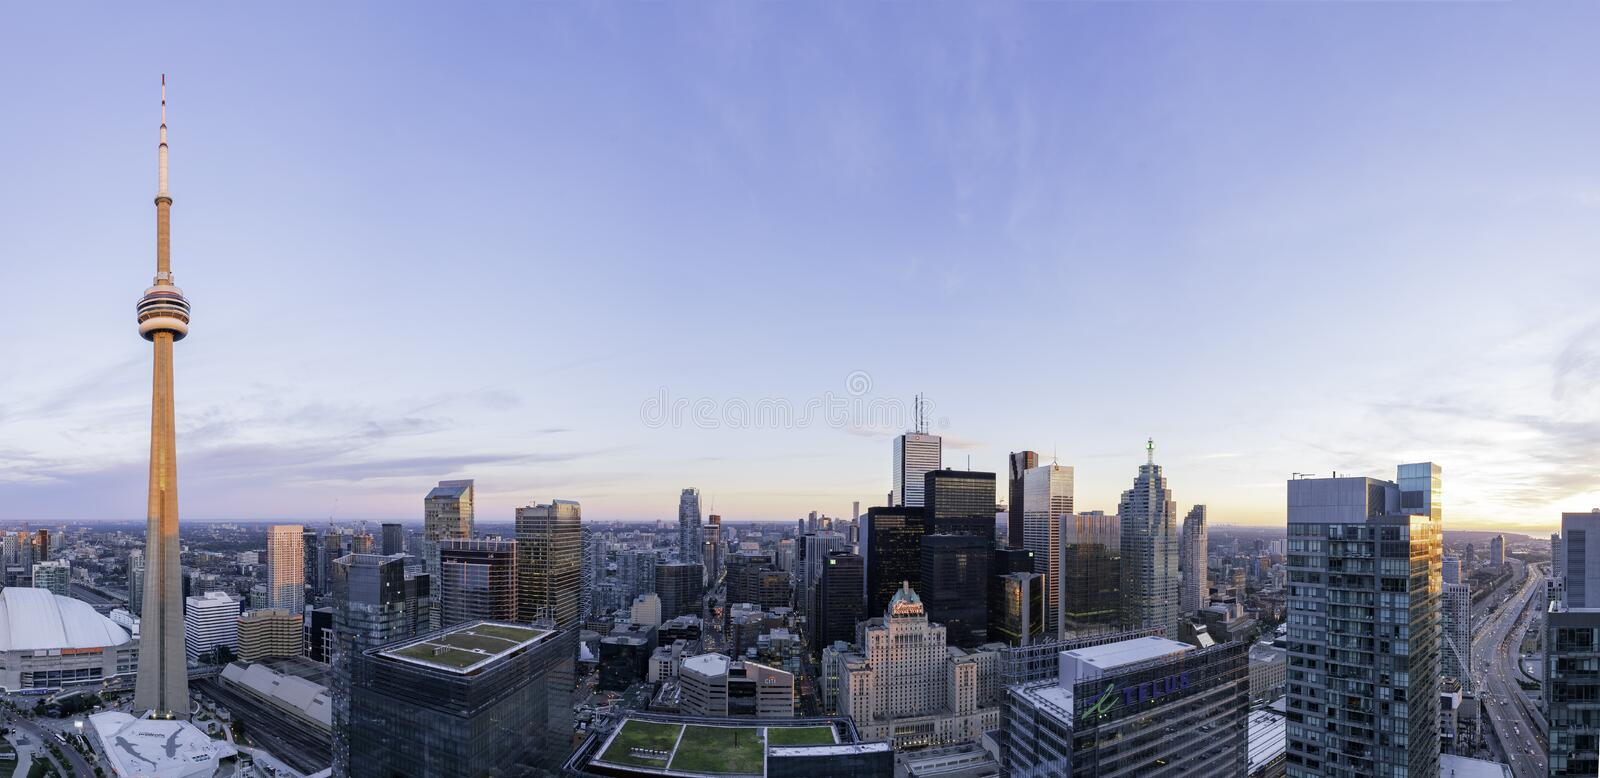 Aerial dawn view of the Toronto downtown cityscape with CN Tower. Toronto, SEP 29: Aerial dawn view of the downtown cityscapecityscape with CN Tower on SEP 29 royalty free stock photography